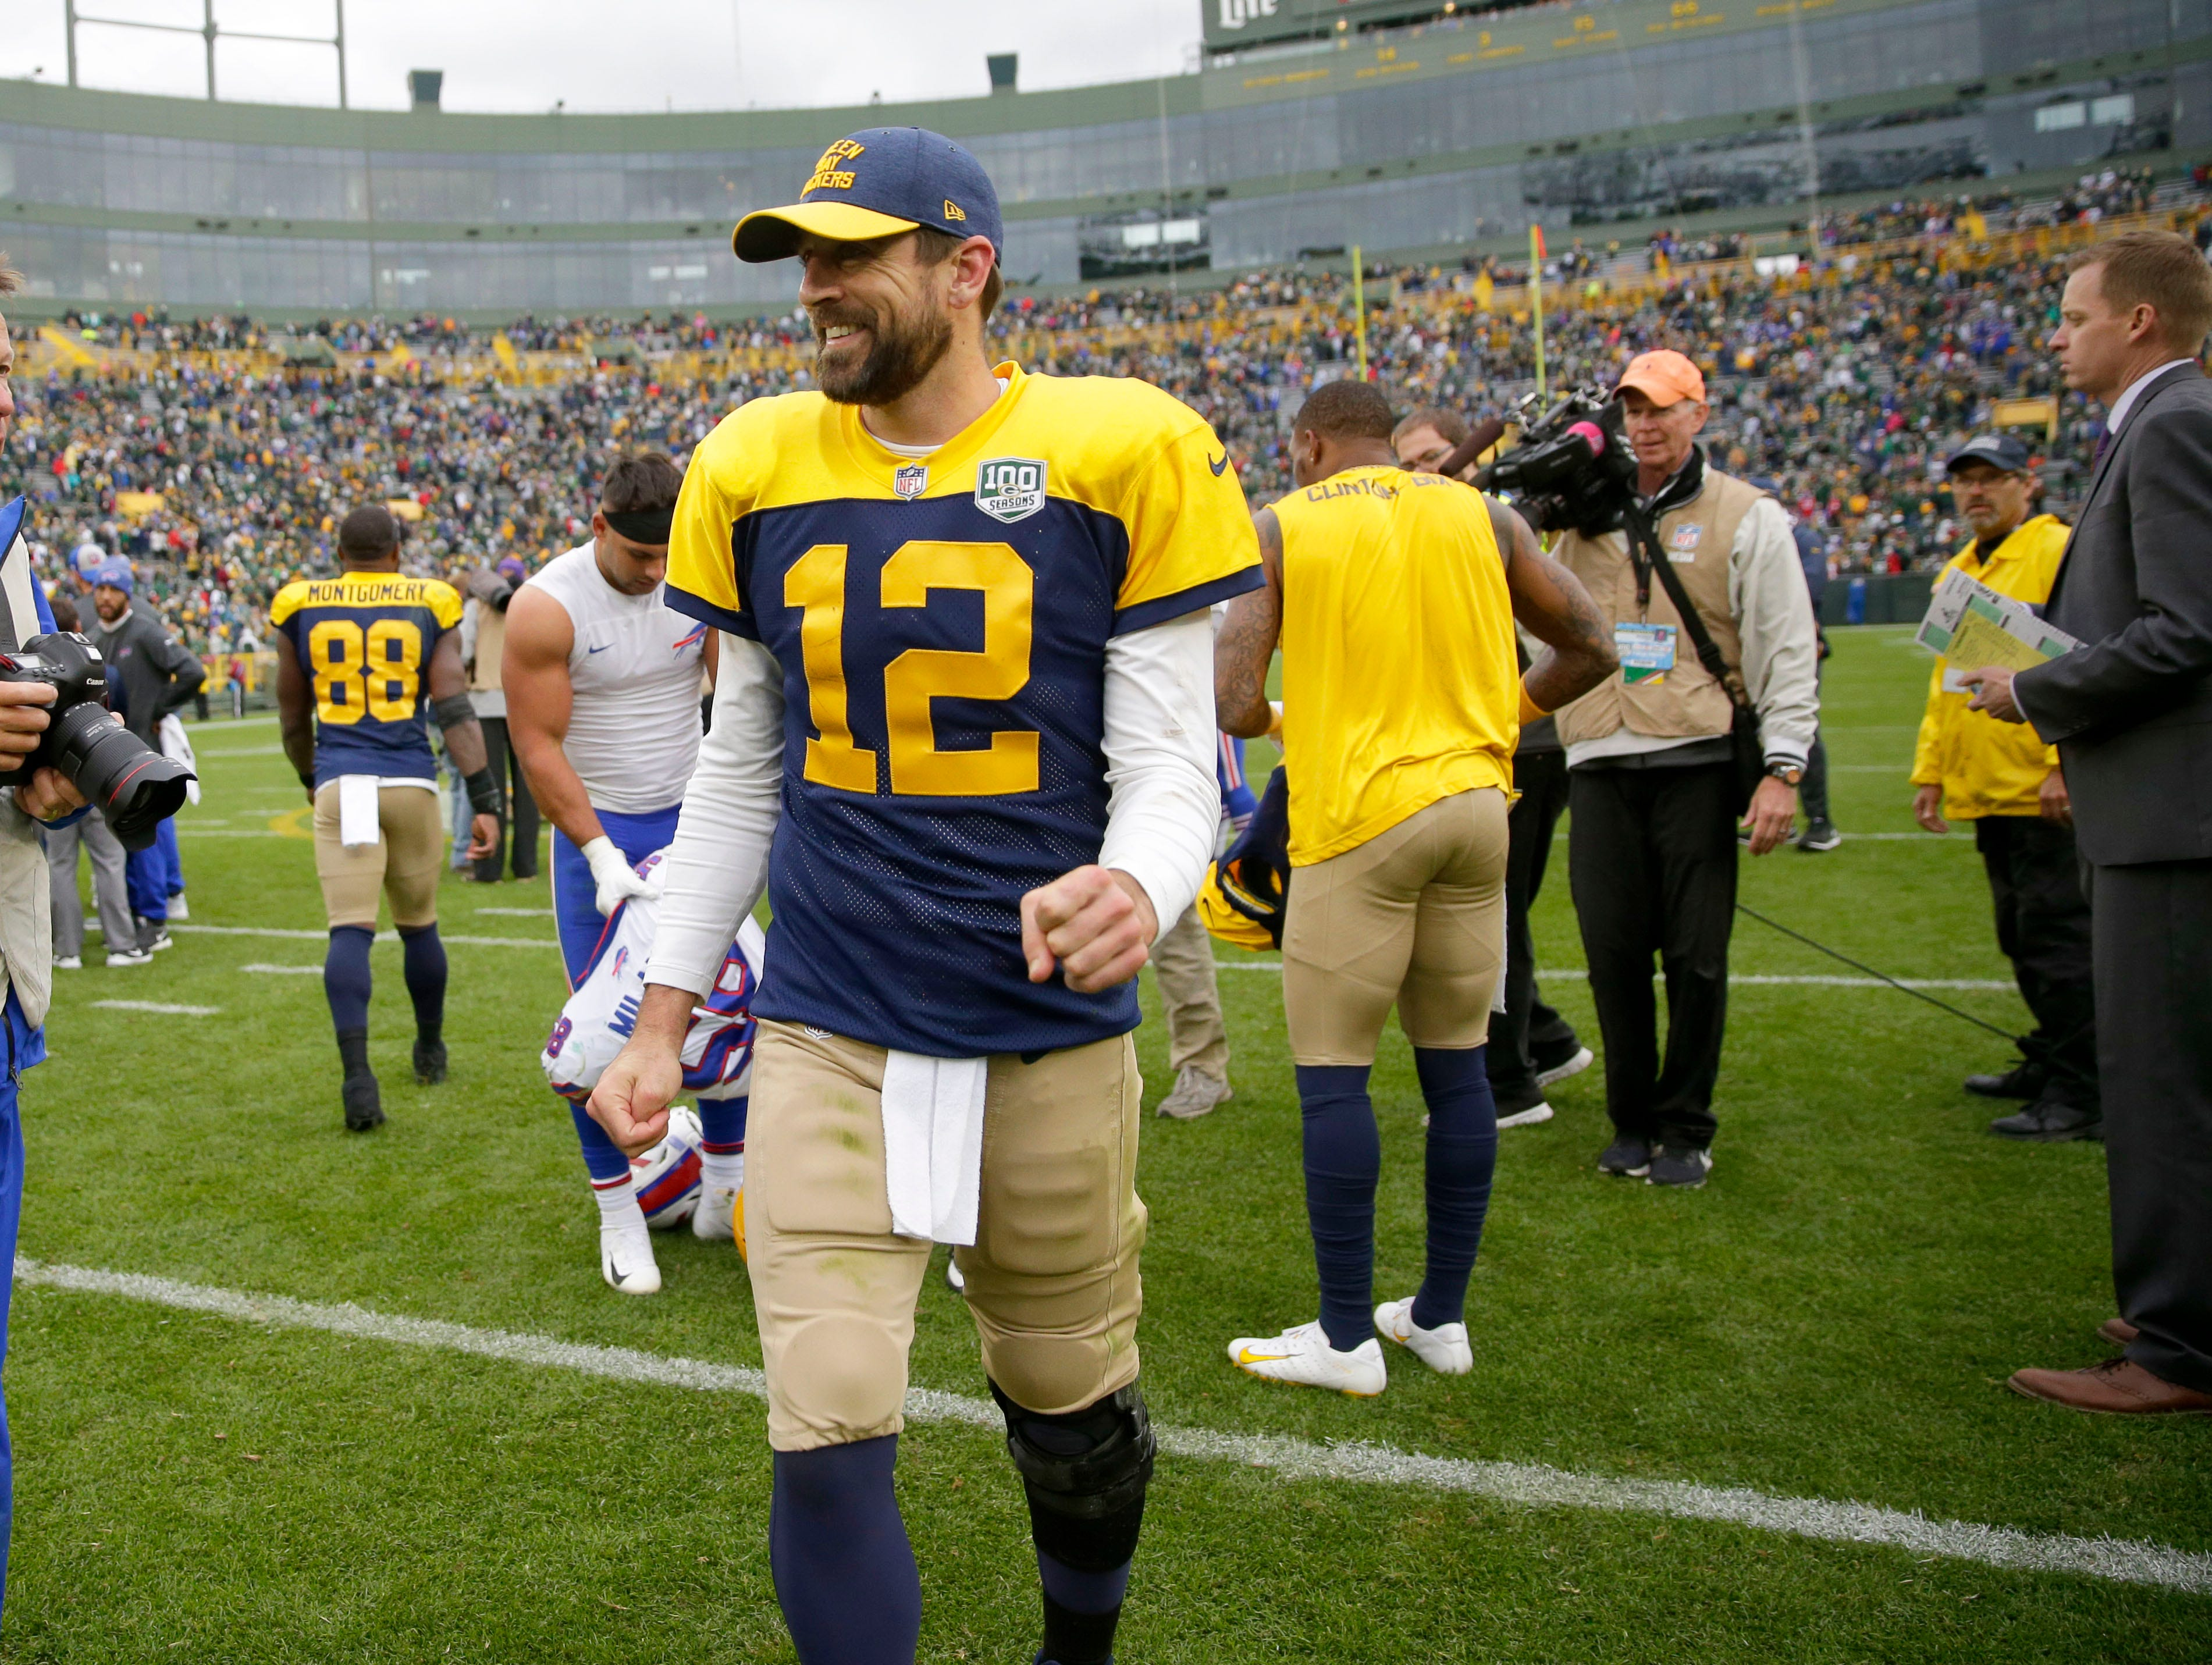 Green Bay Packers quarterback Aaron Rodgers (12) walks off the field after the Green Bay Packers 22-0 win against the Buffalo Bills at Lambeau Field in Green Bay, Wis. on Sunday, September 30, 2018. Mike De Sisti /USA TODAY NETWORK-Wisconsin